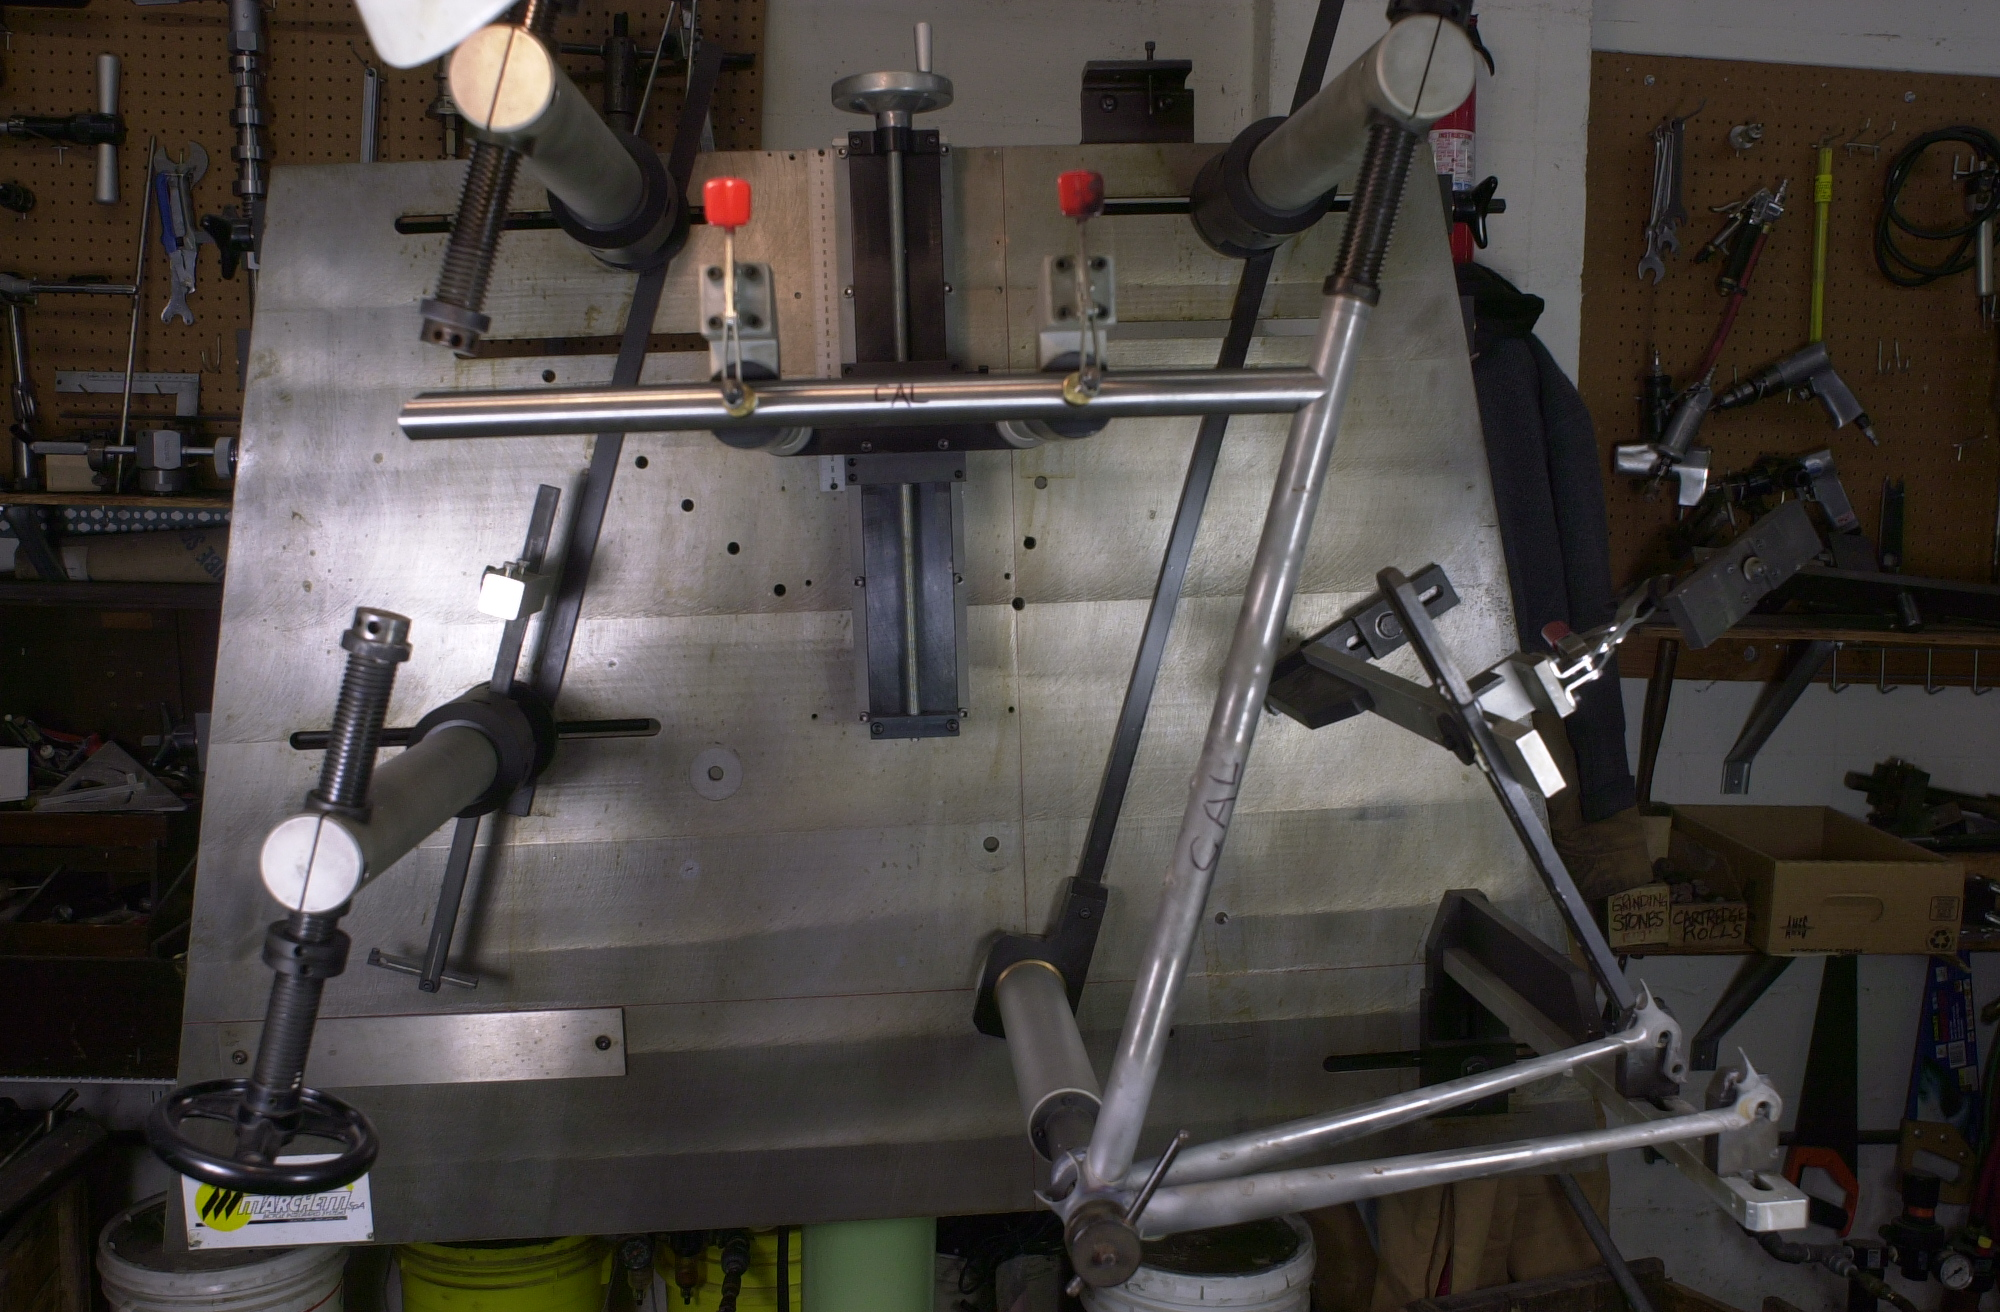 Previously the seat tube and chainstays of the next frame were tacked into the bottom bracket shell then removed from the fixture and completely brazed from the inside of the shell.  Now the frame returns to the fixture and the top tube, which has been mitred on both ends, is positioned.